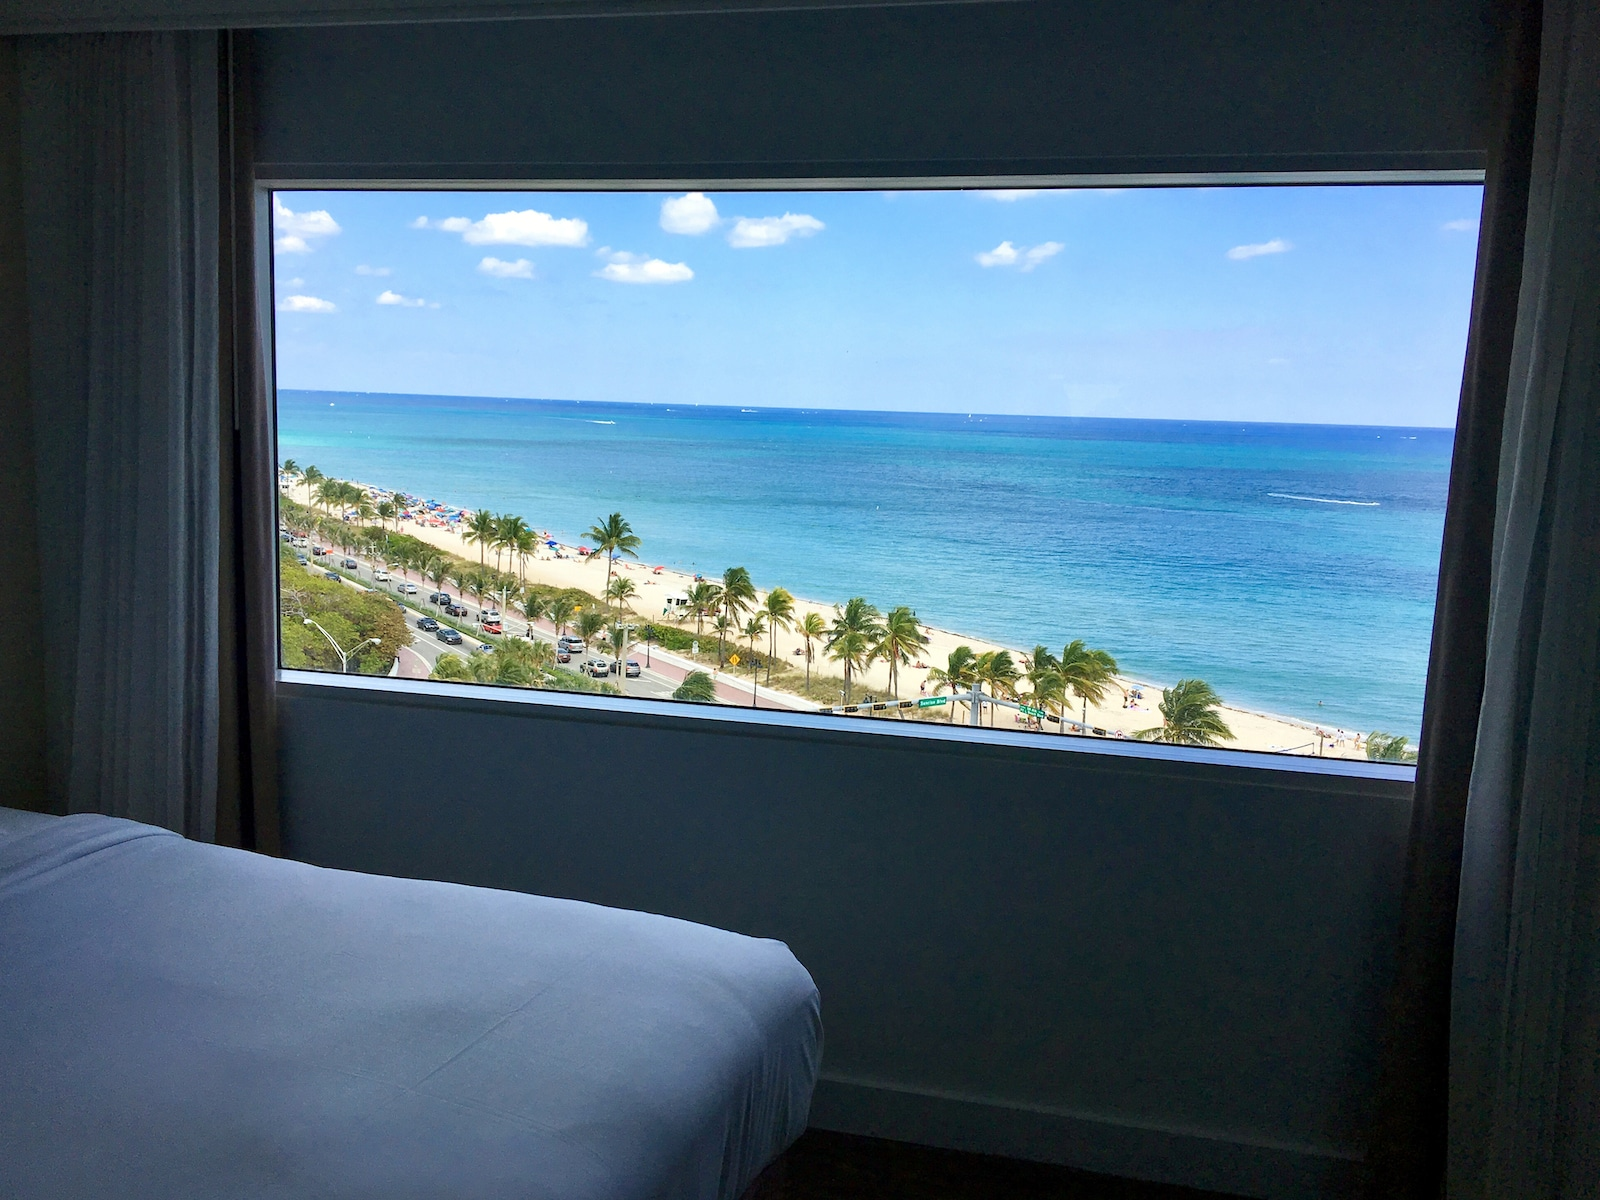 Central Beach in Fort Lauderdale, Florida